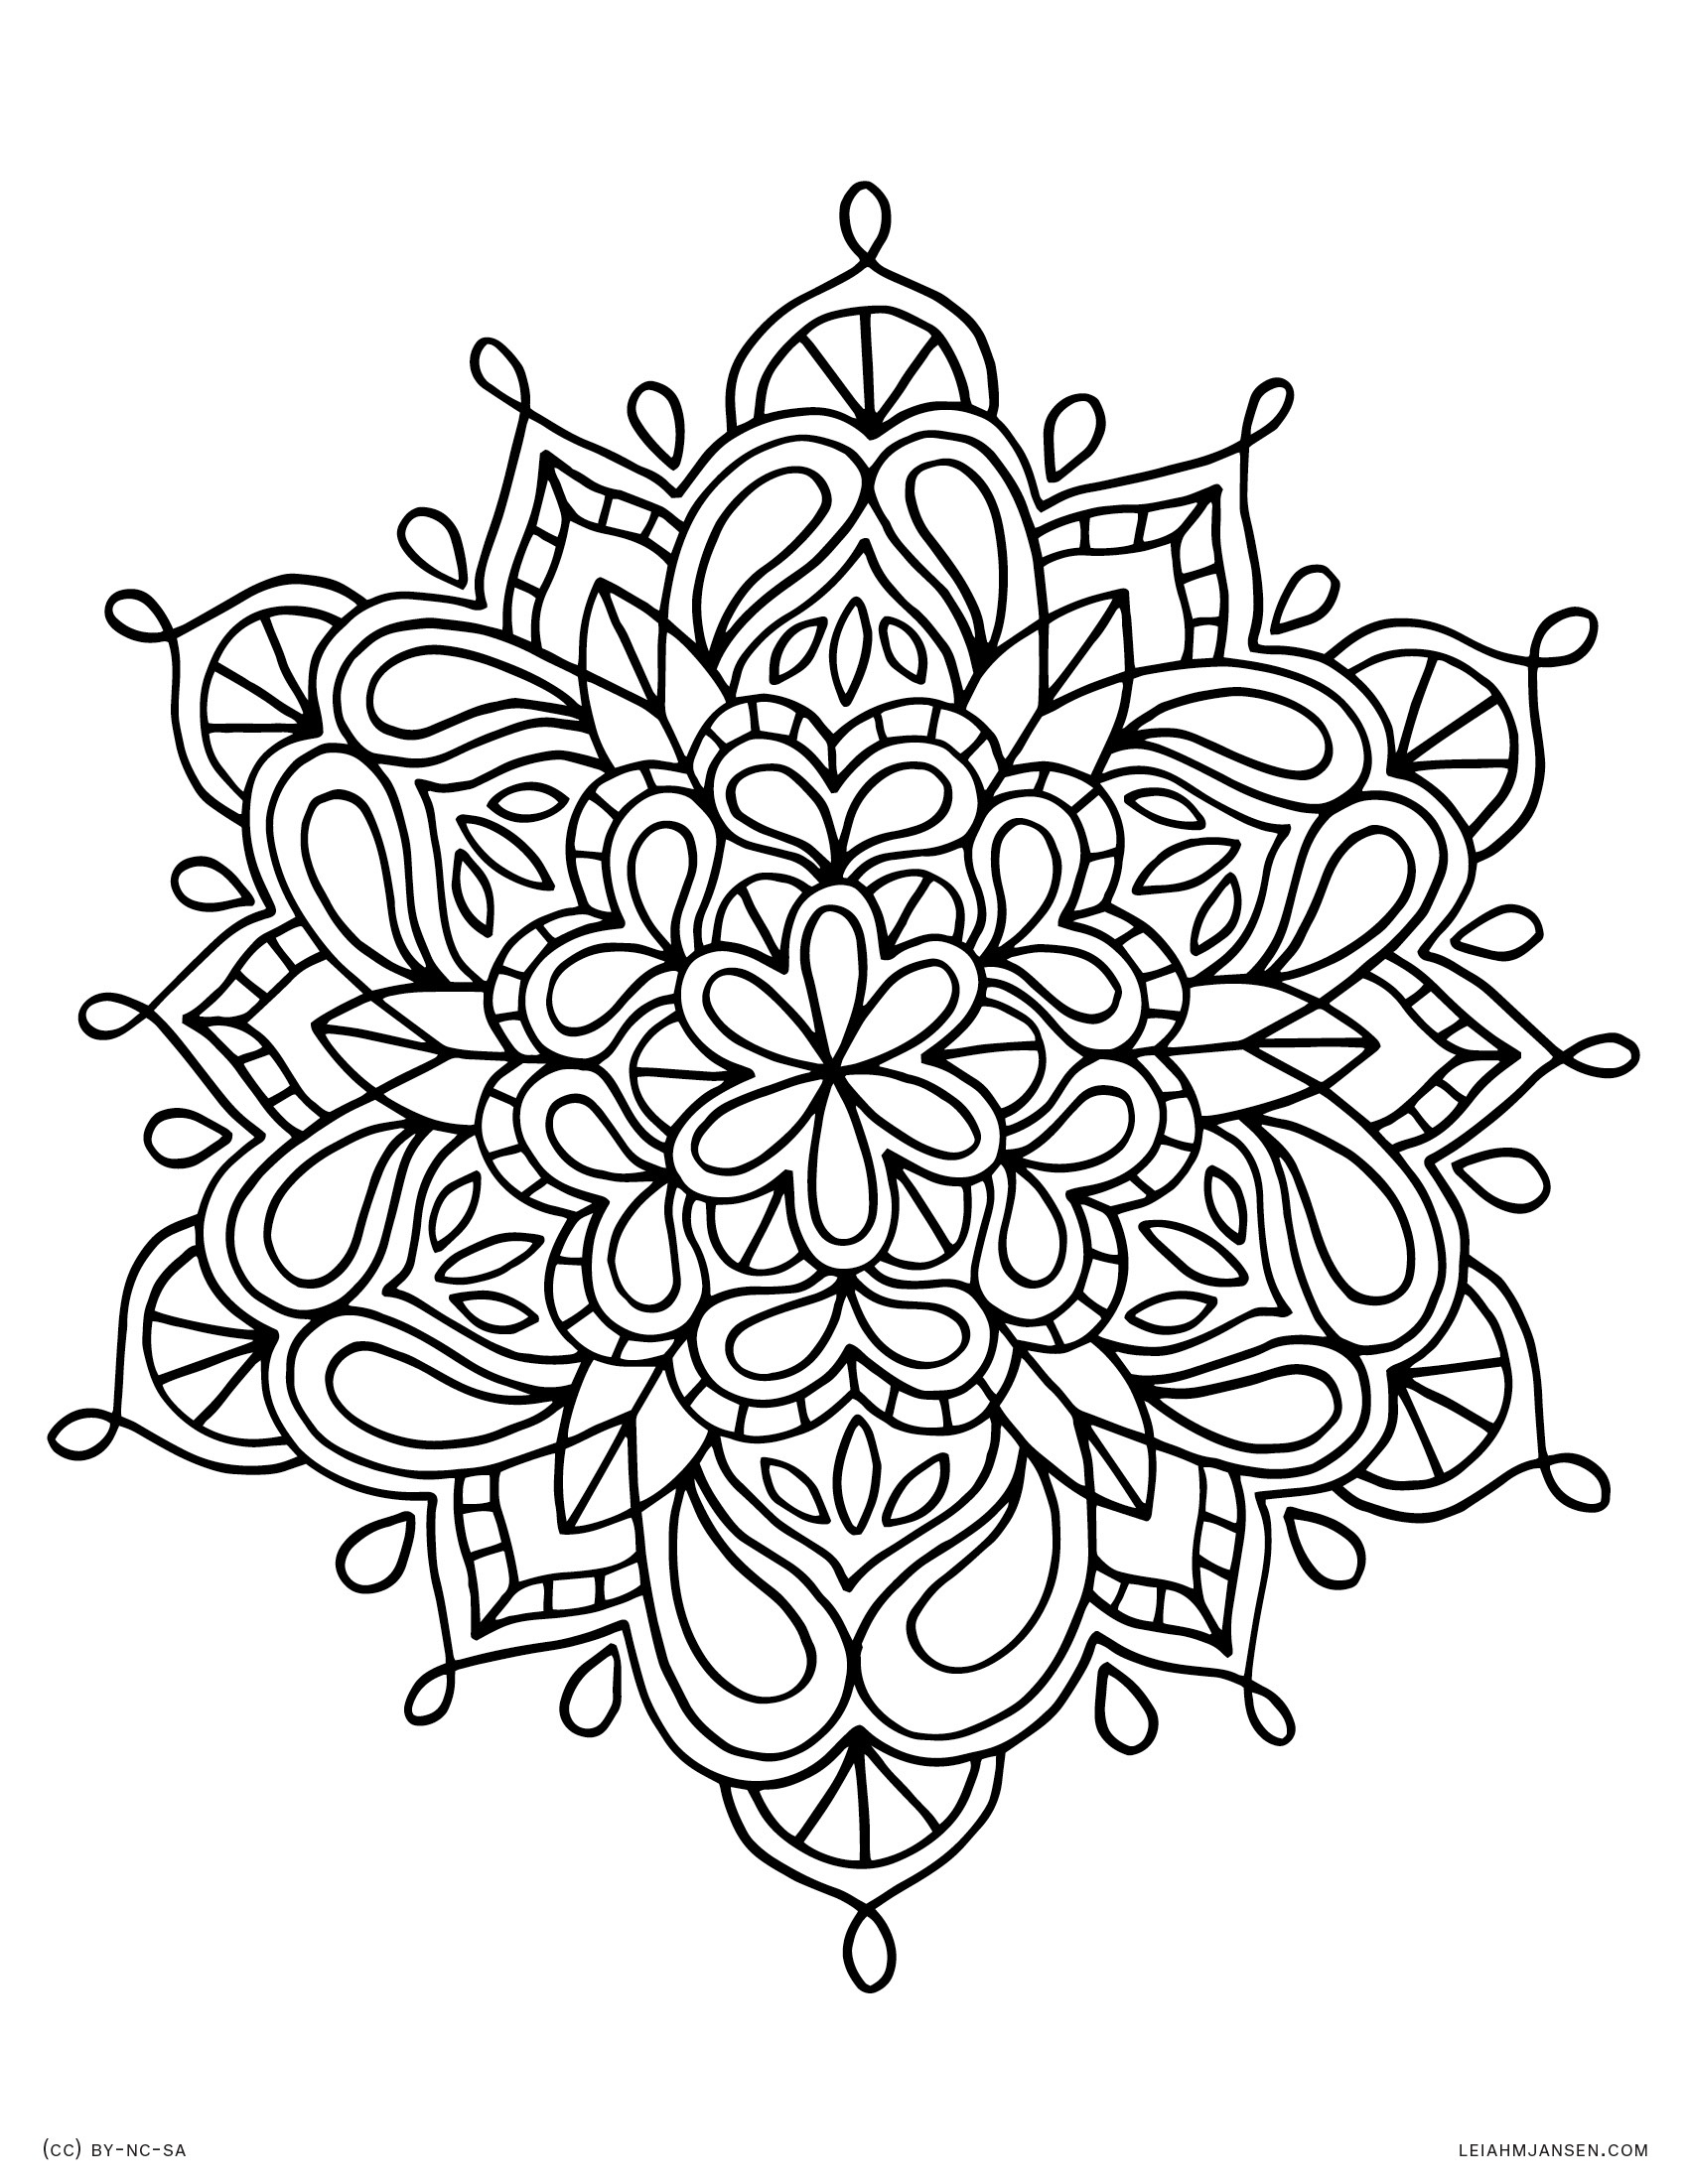 Coloring Pages - Free Printable Coloring Designs For Adults